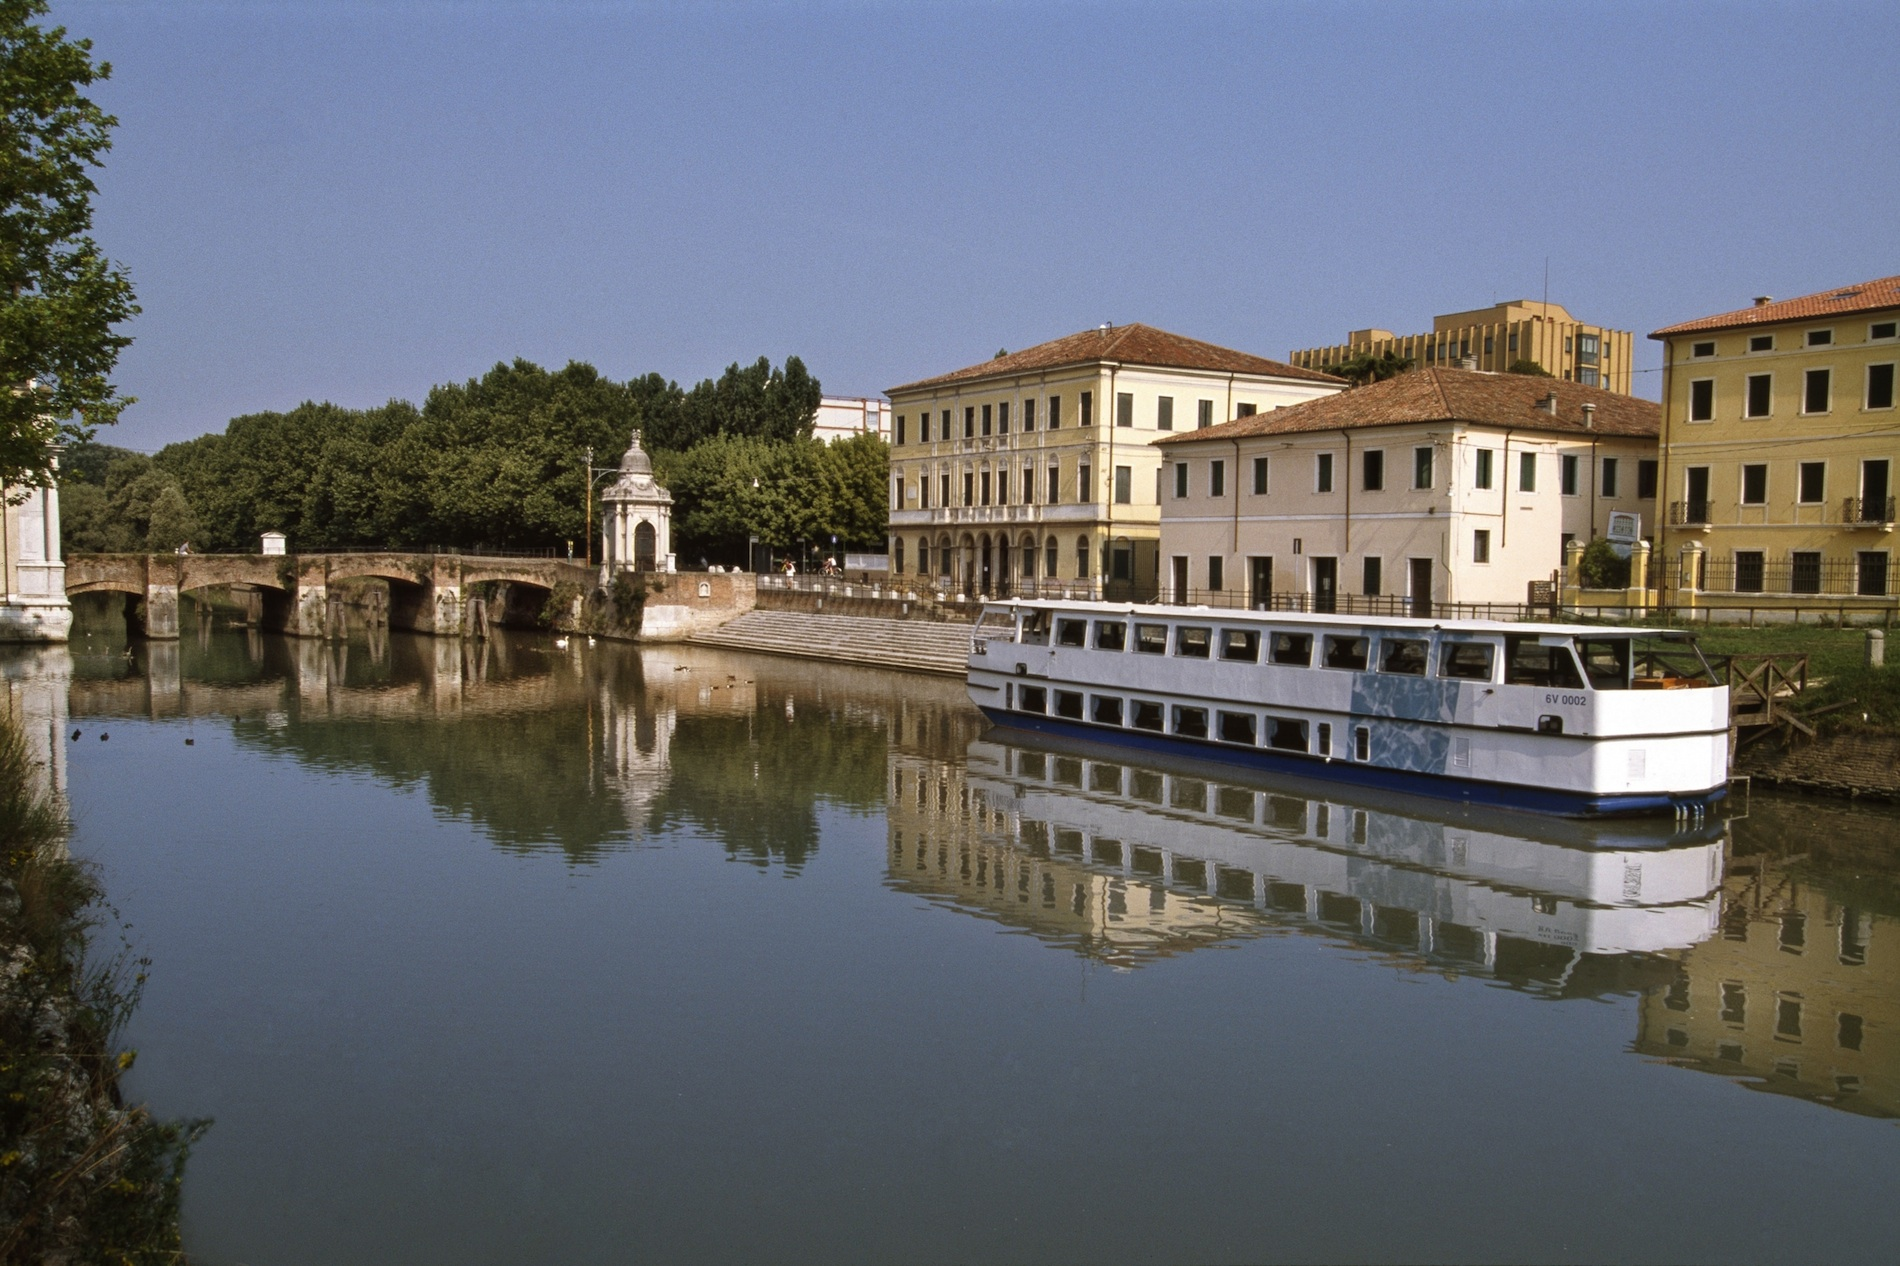 River tourism in Padua